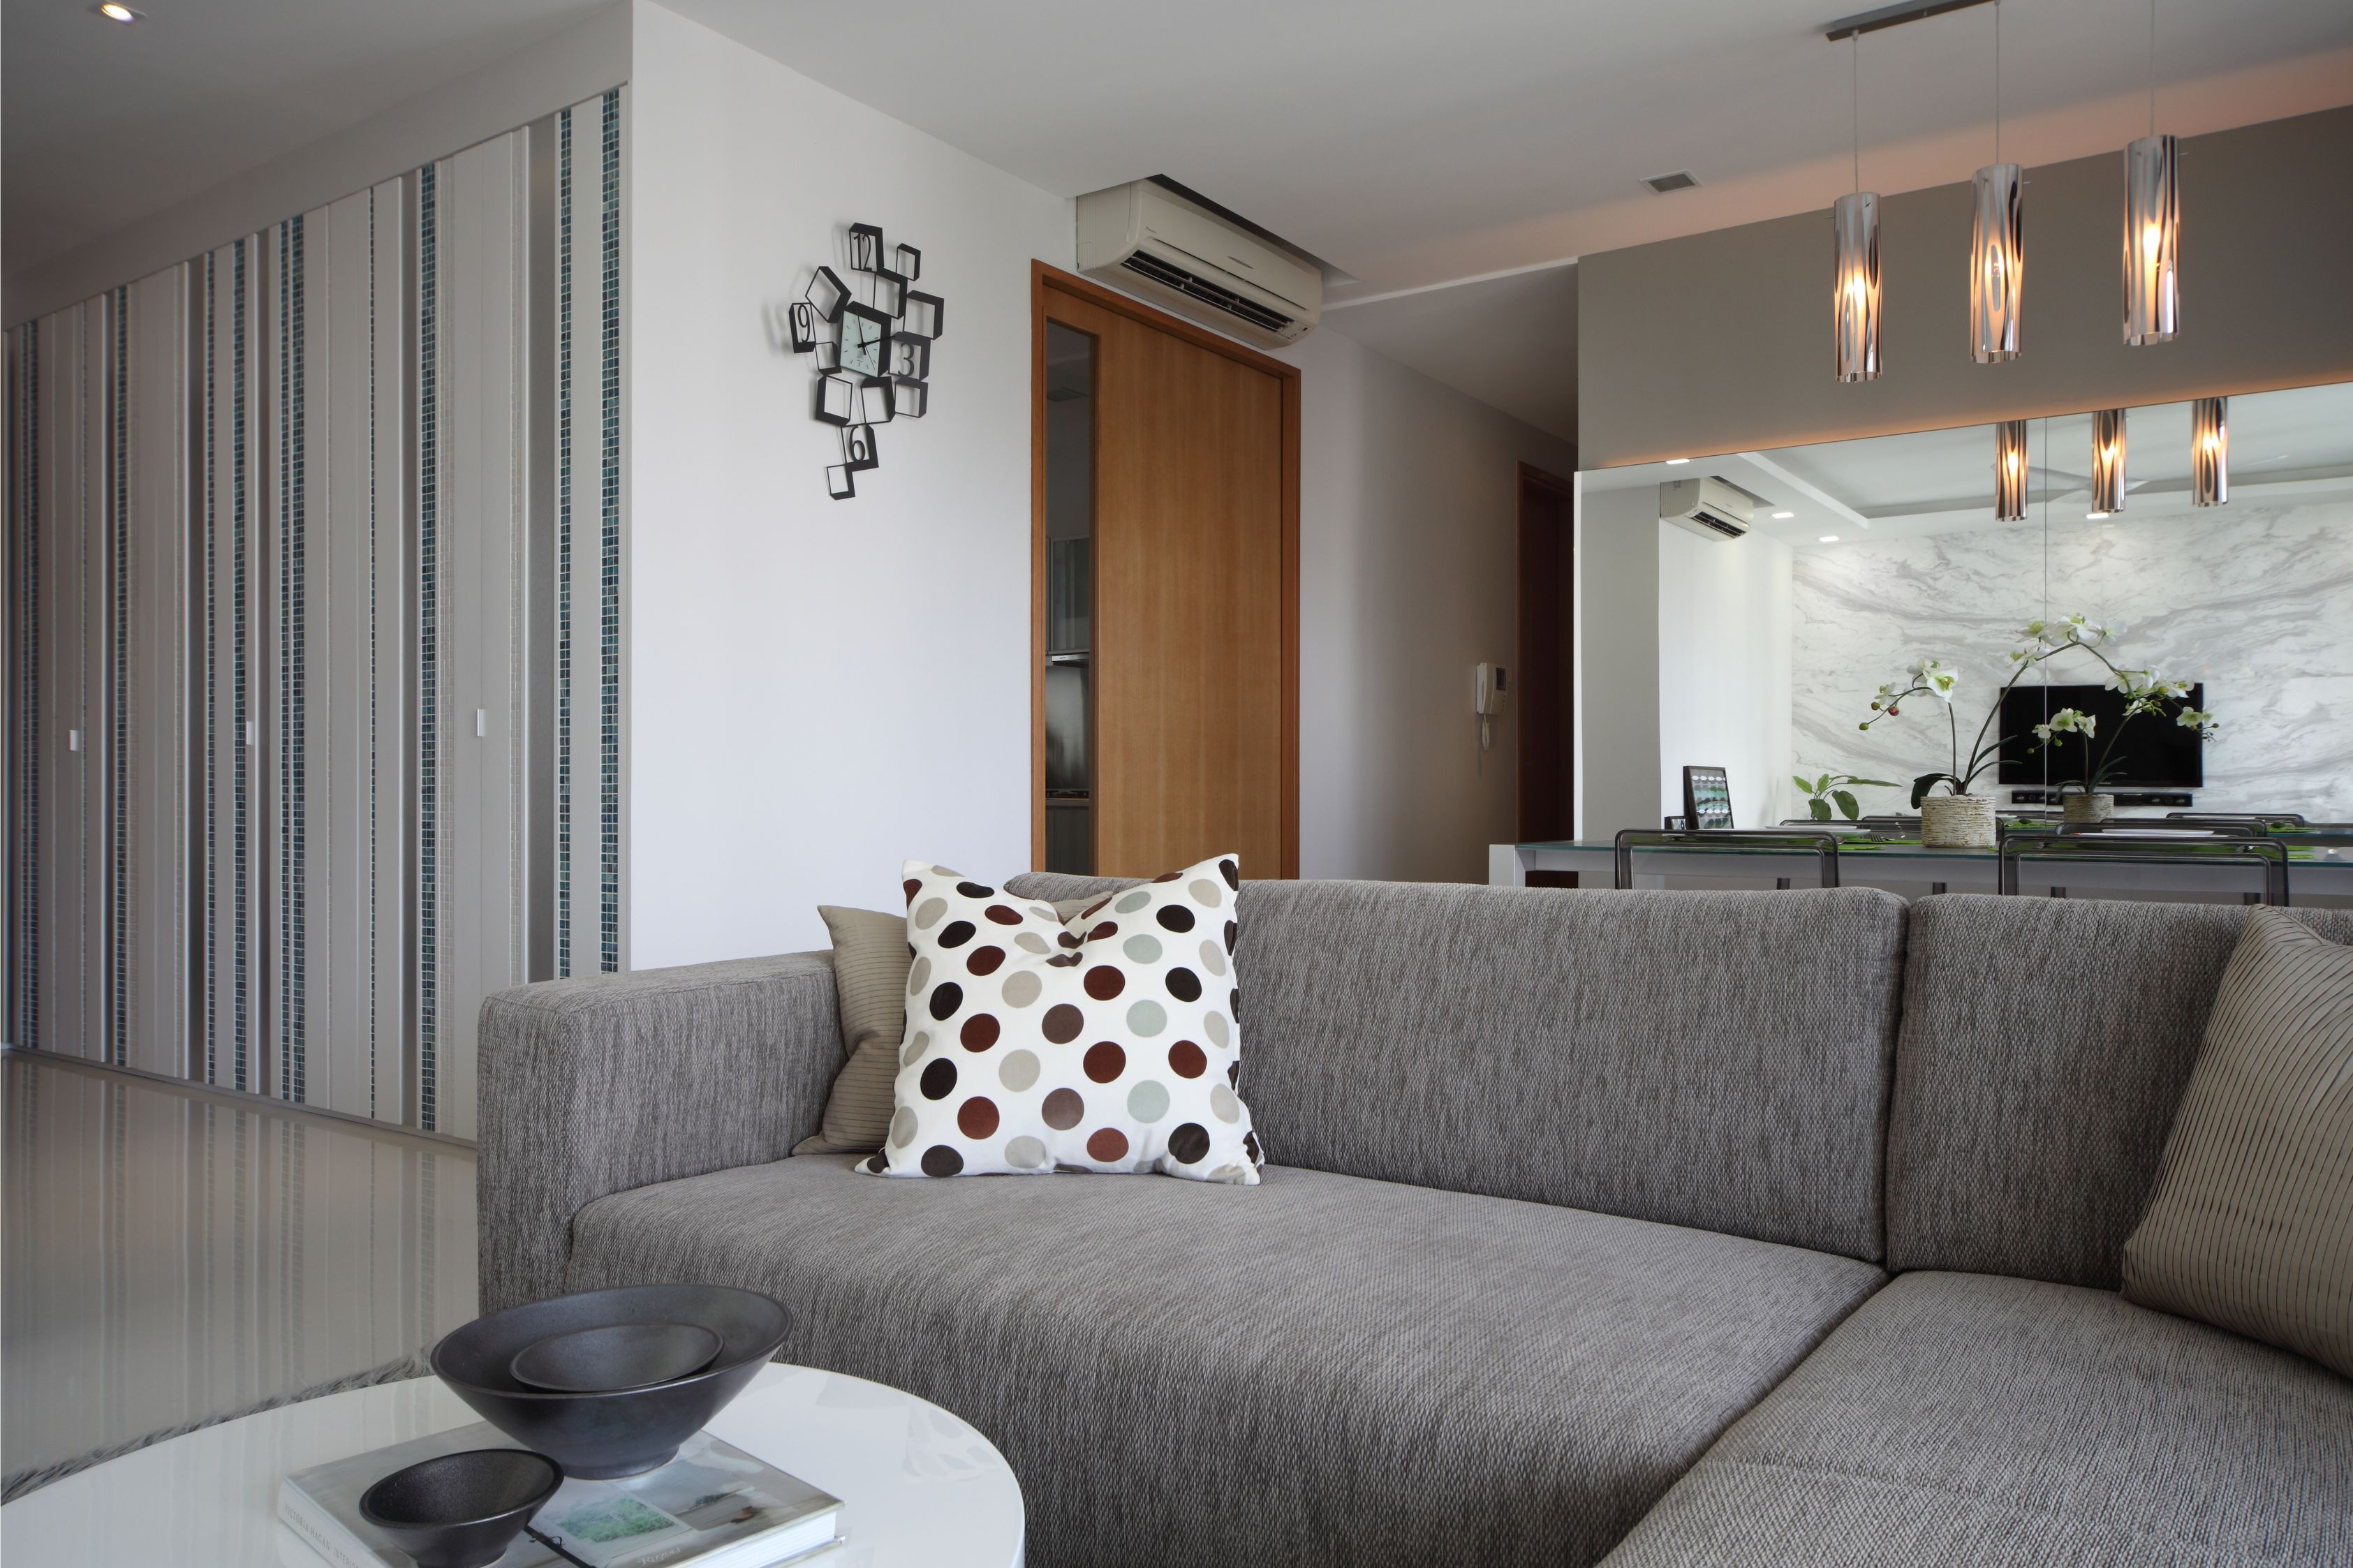 Seaview Condo ∙ Amber Road